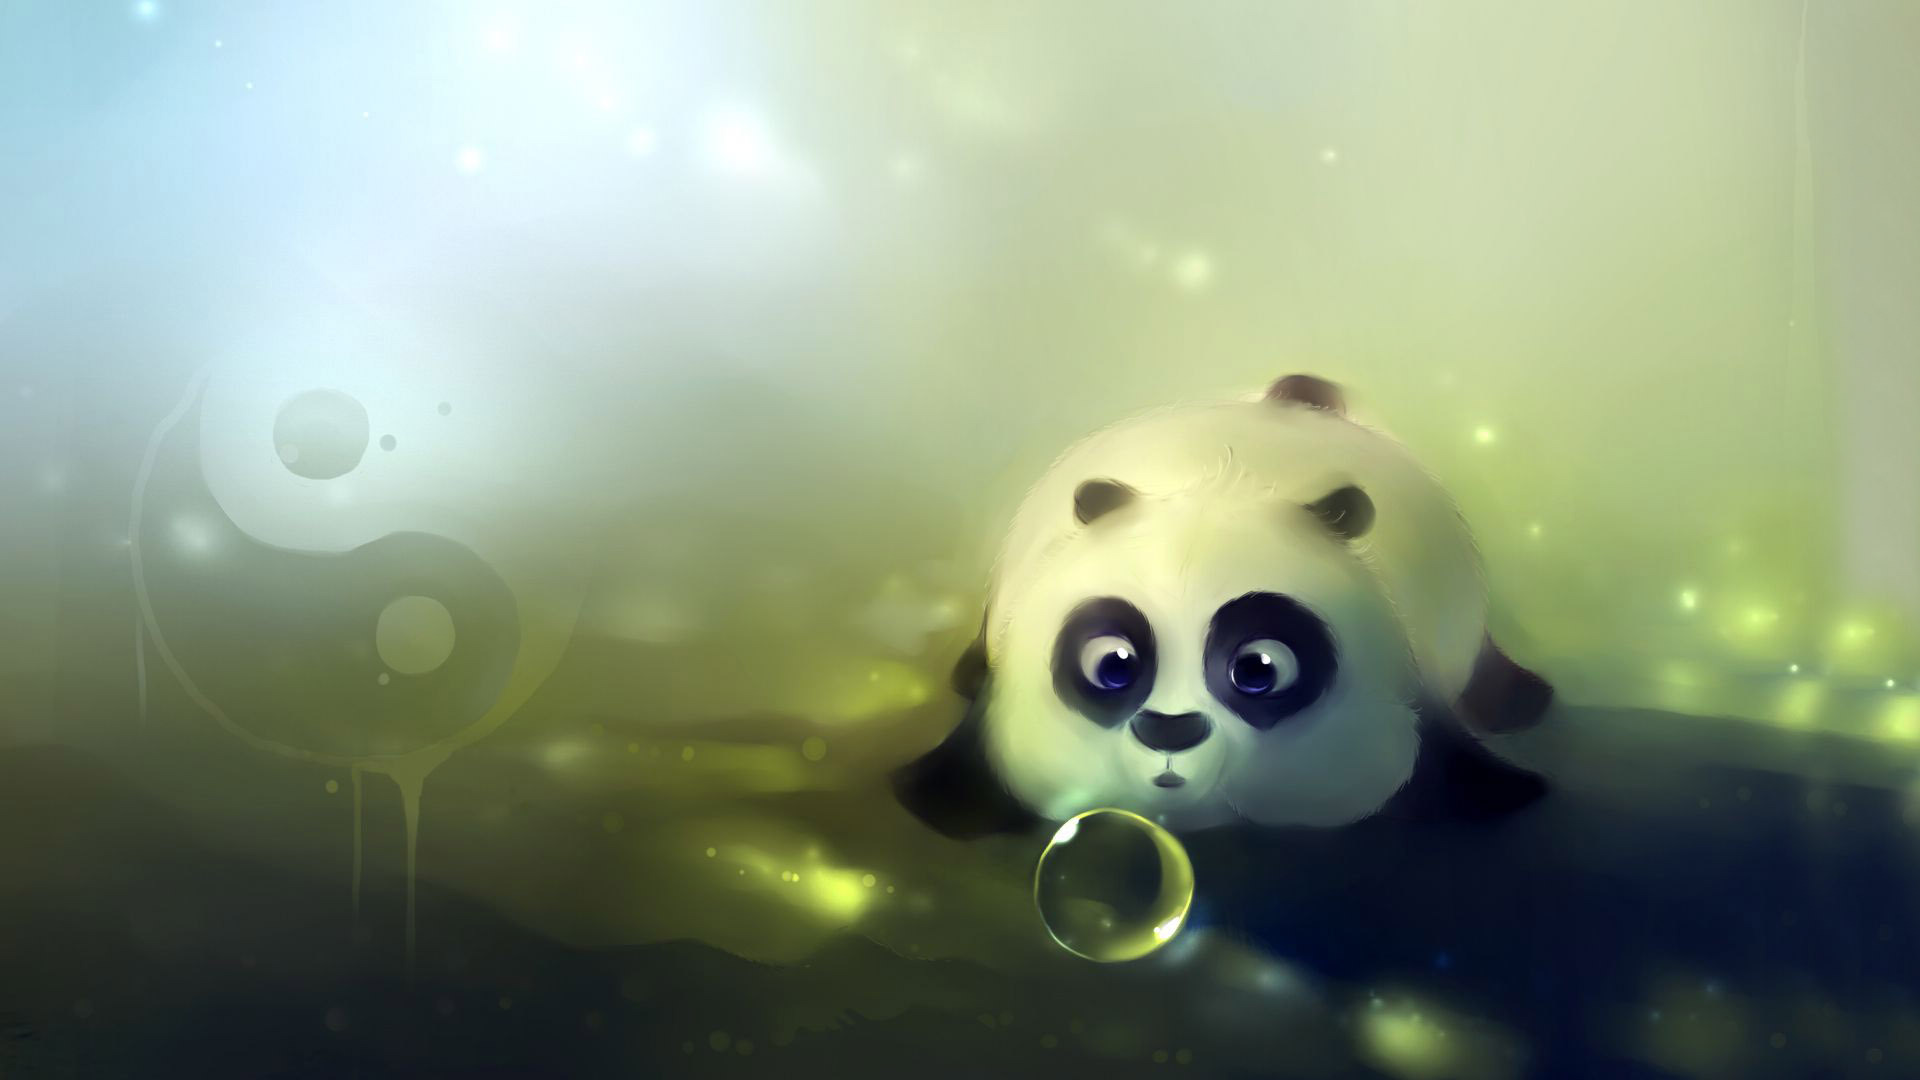 Cute panda playing with bubbles wallpaper